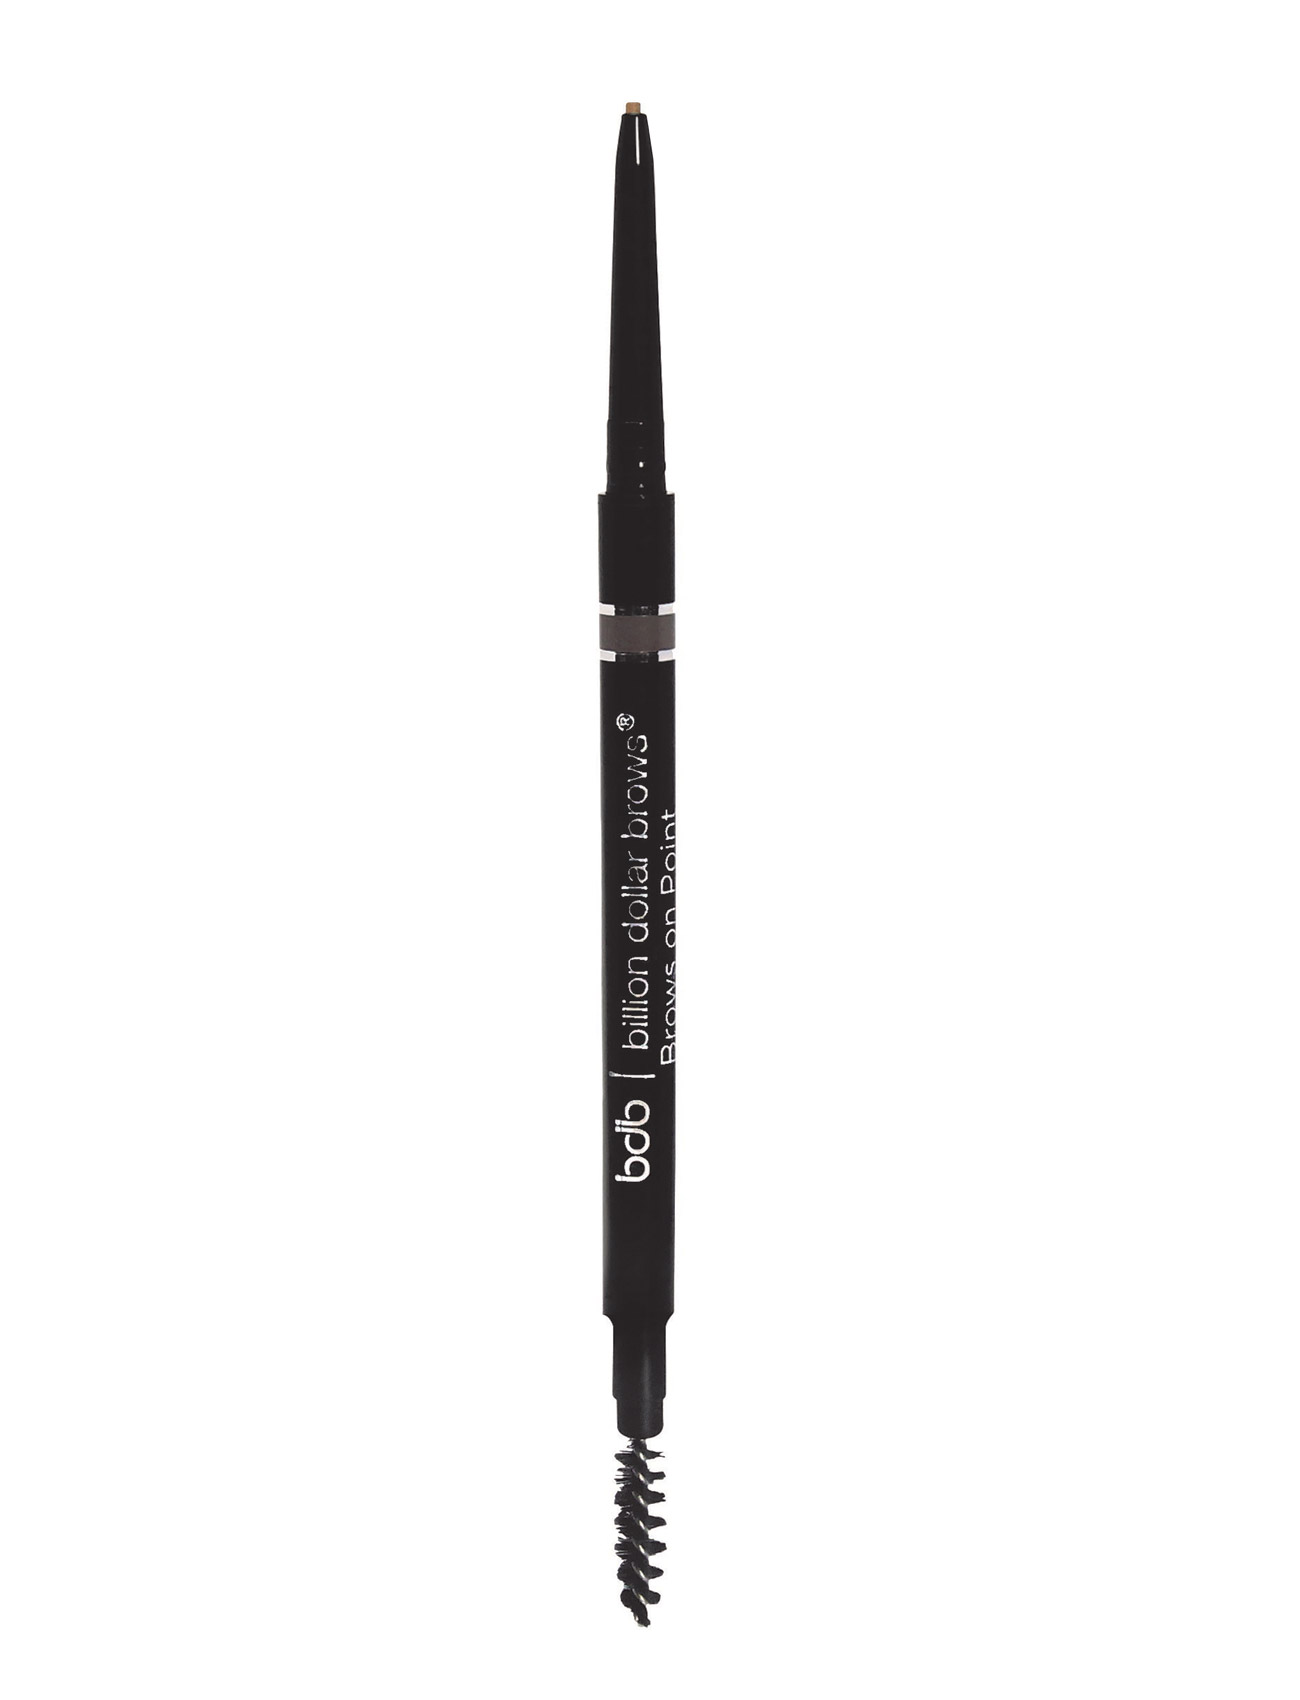 bdb billion dollar brows – Brows on point fra boozt.com dk